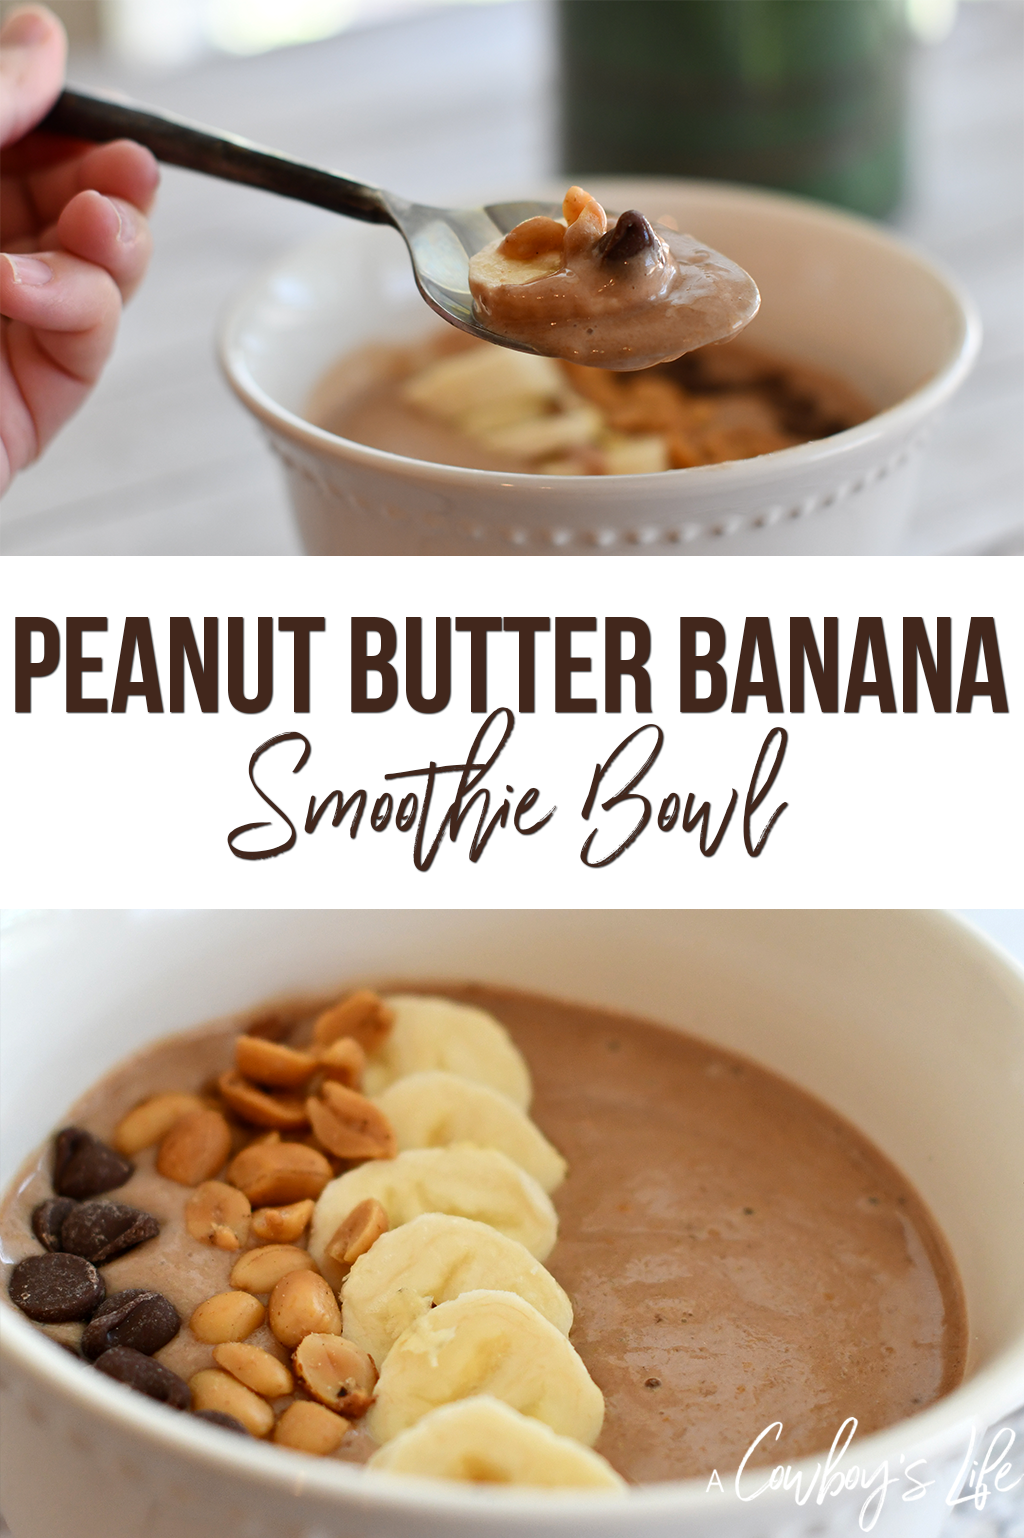 How to make a peanut butter banana smoothie bowl